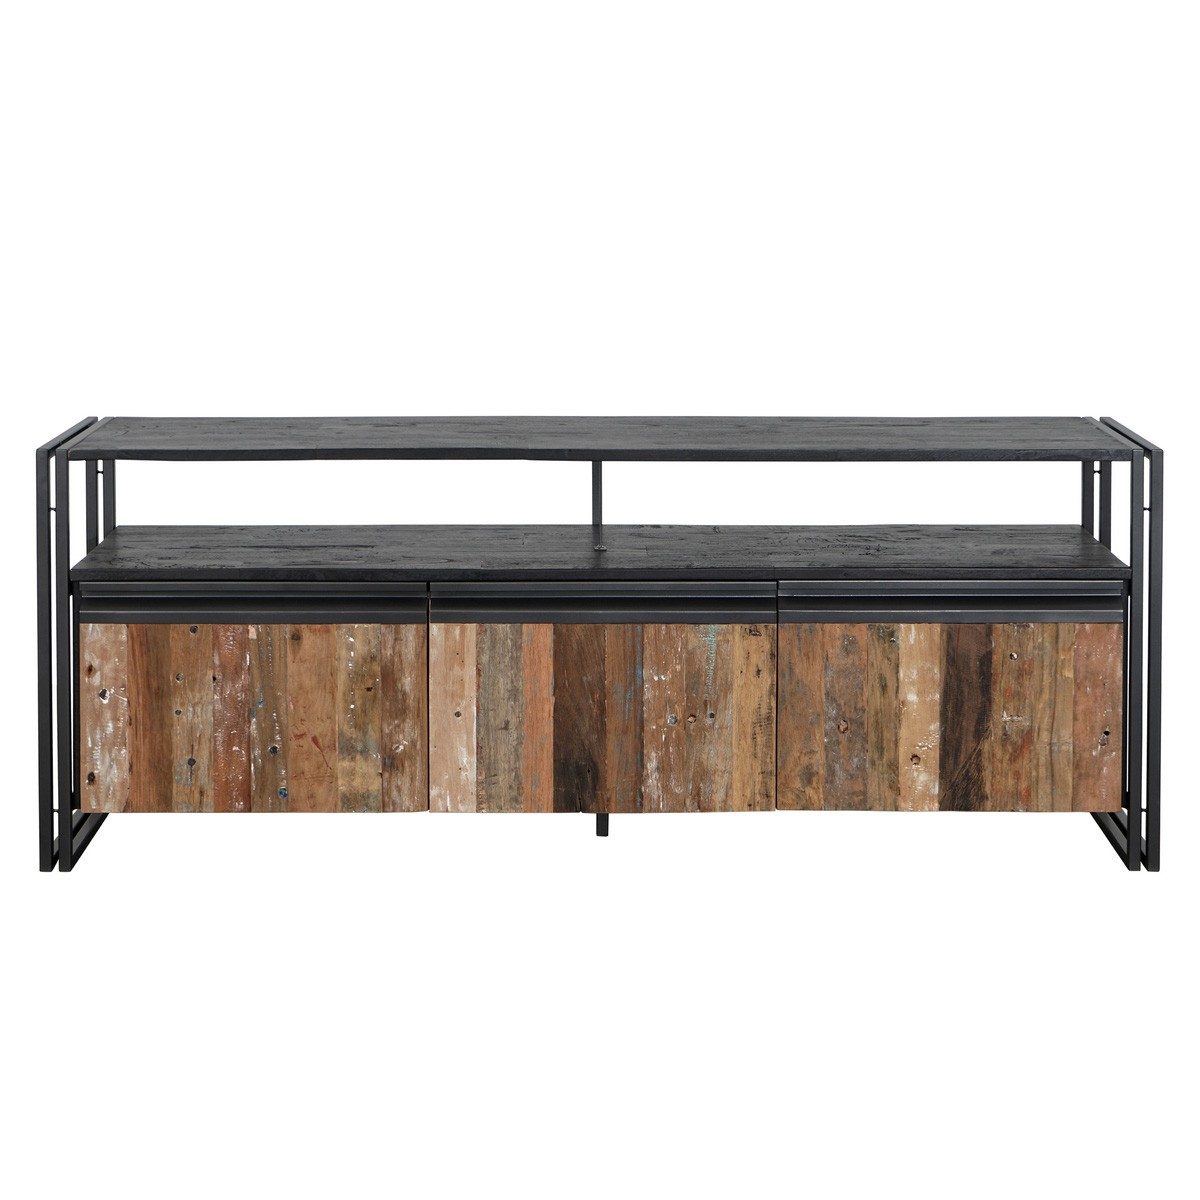 New Age Reclaimed Timber & Metal Industrial 3 Door Hight TV Stand,180cm